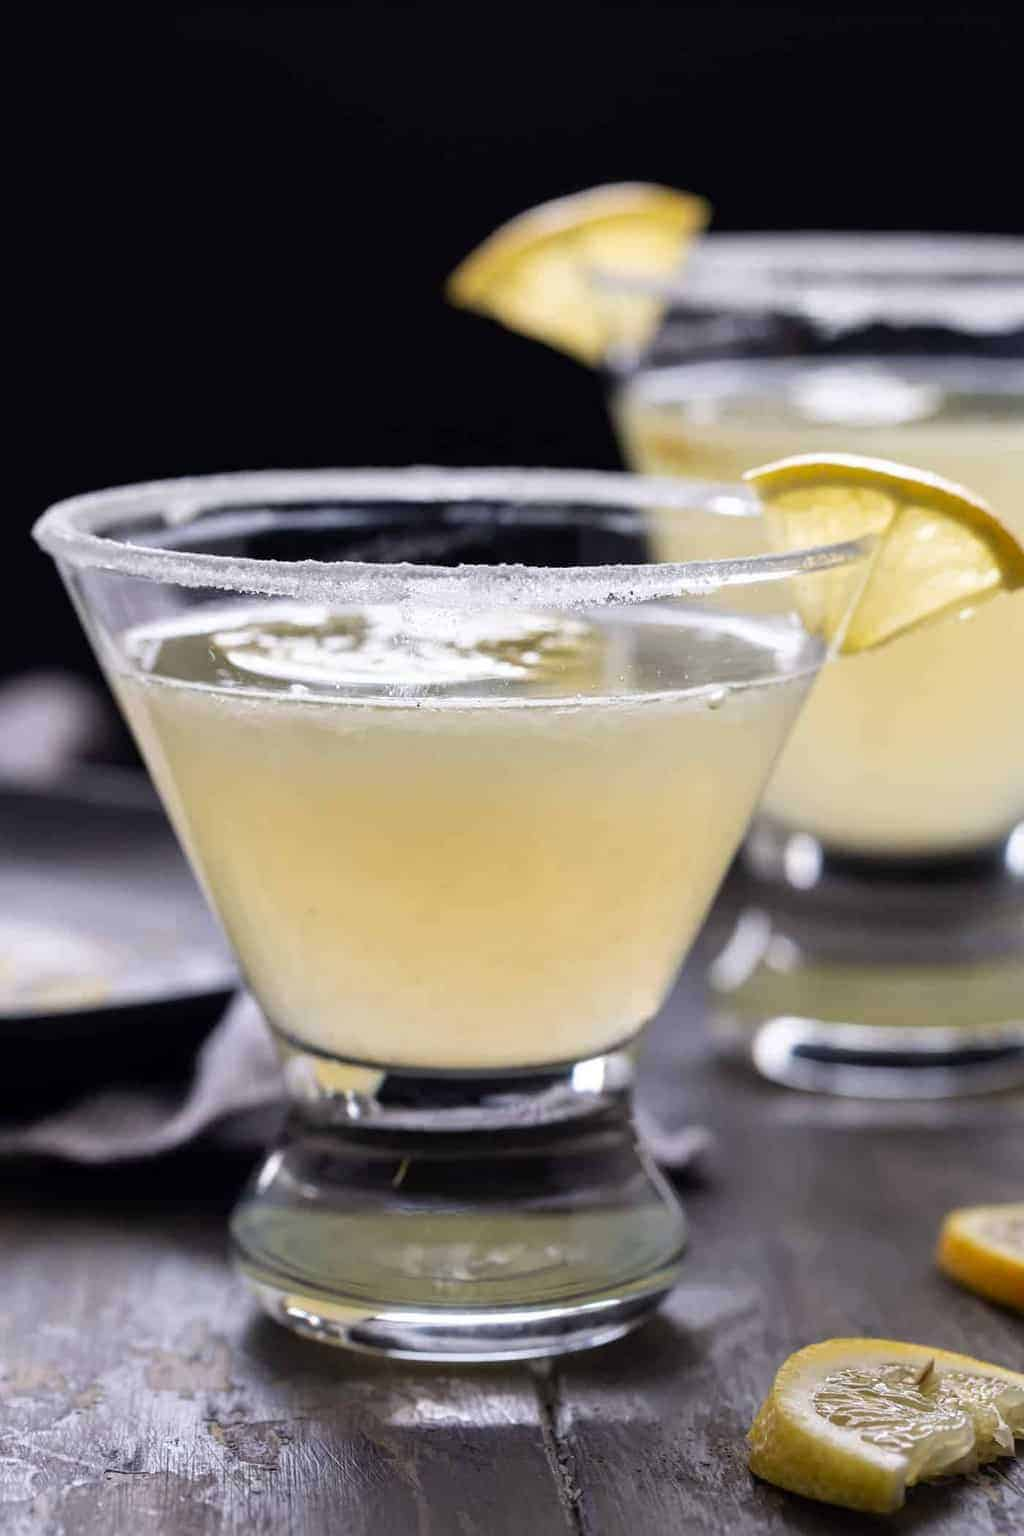 Lemon Drop Martini recipe in a low martini glass with a sugared rim and half of a lemon wedge for a garnish.